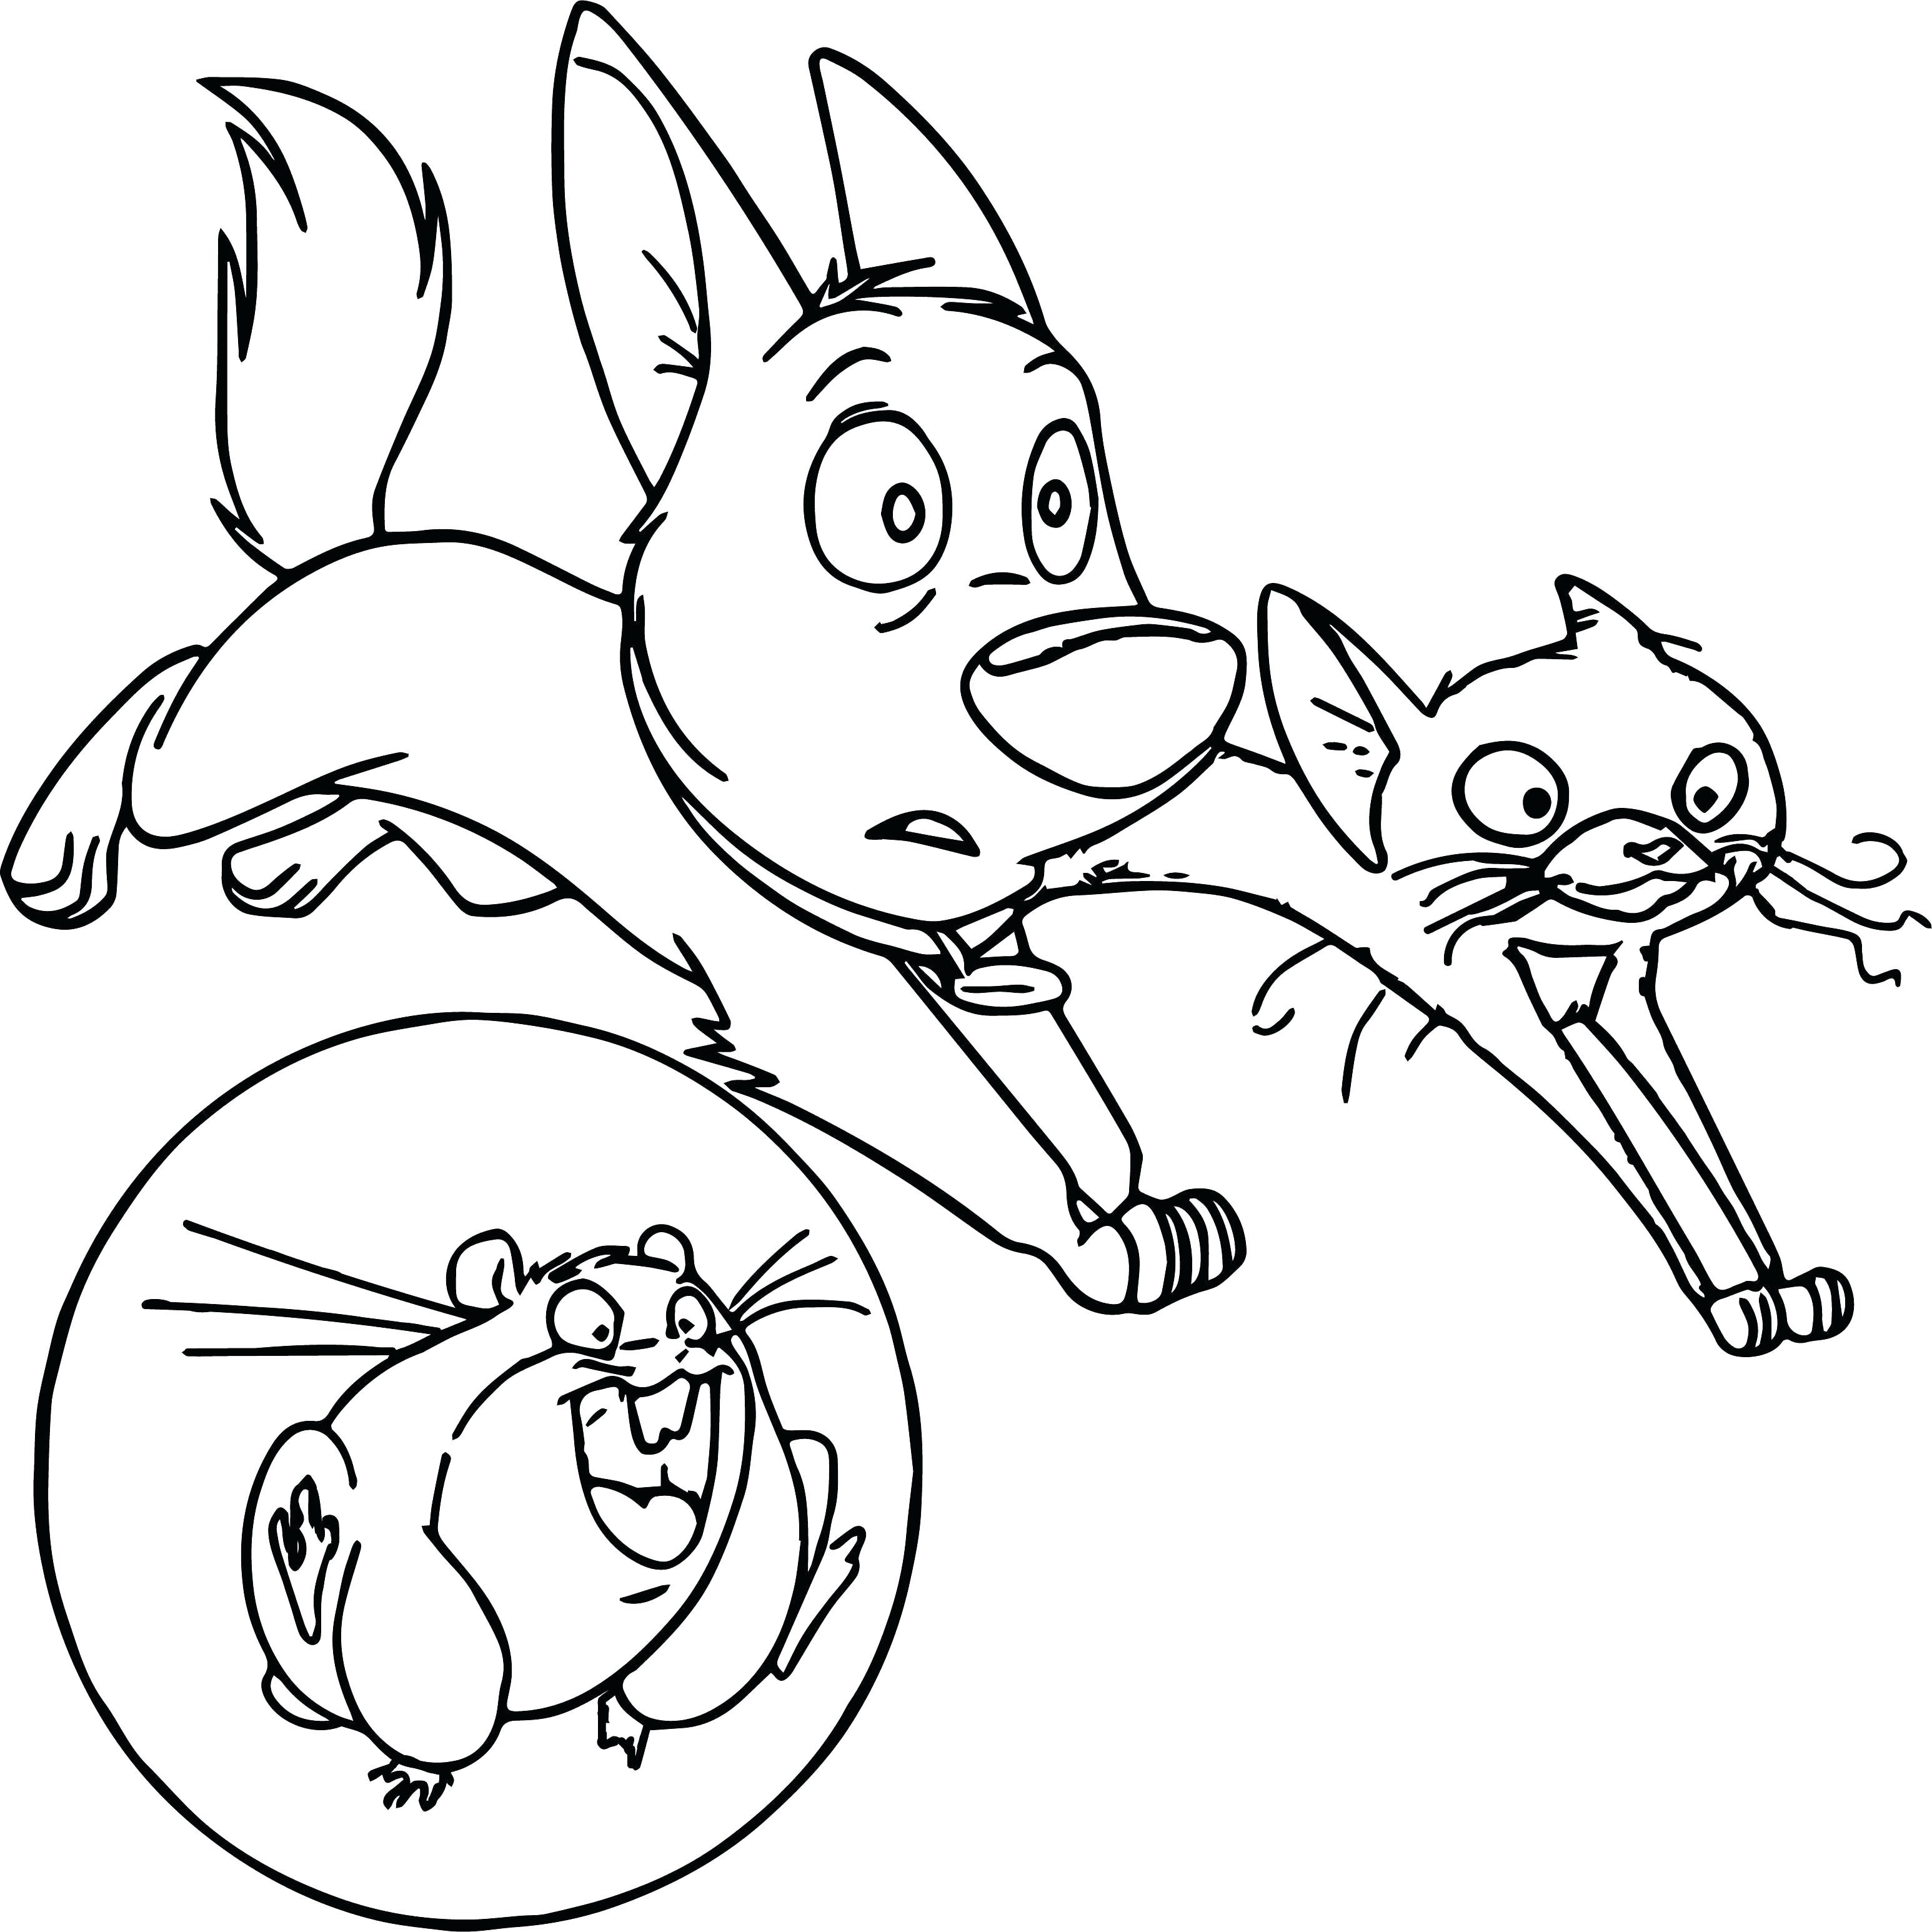 3092x3092 Fresh Disney Bolt Coloring Pages Design Printable Coloring Sheet